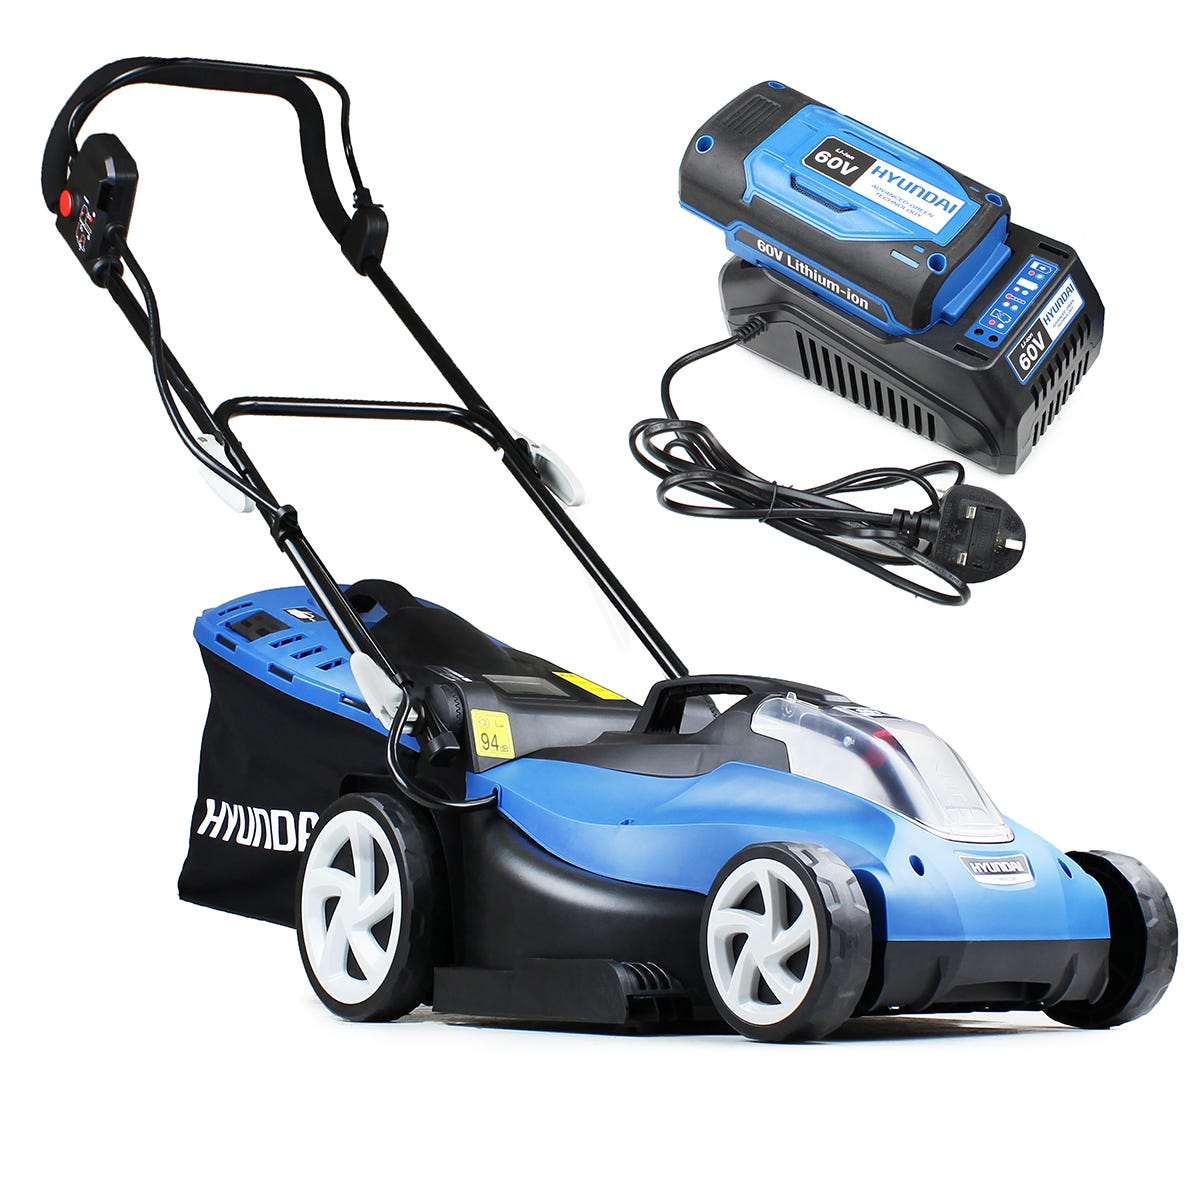 Image of Hyundai HYM60Li420 Cordless Powered Lawnmower 42cm Cutting Width with 60V Lithium-ion Battery and Charger